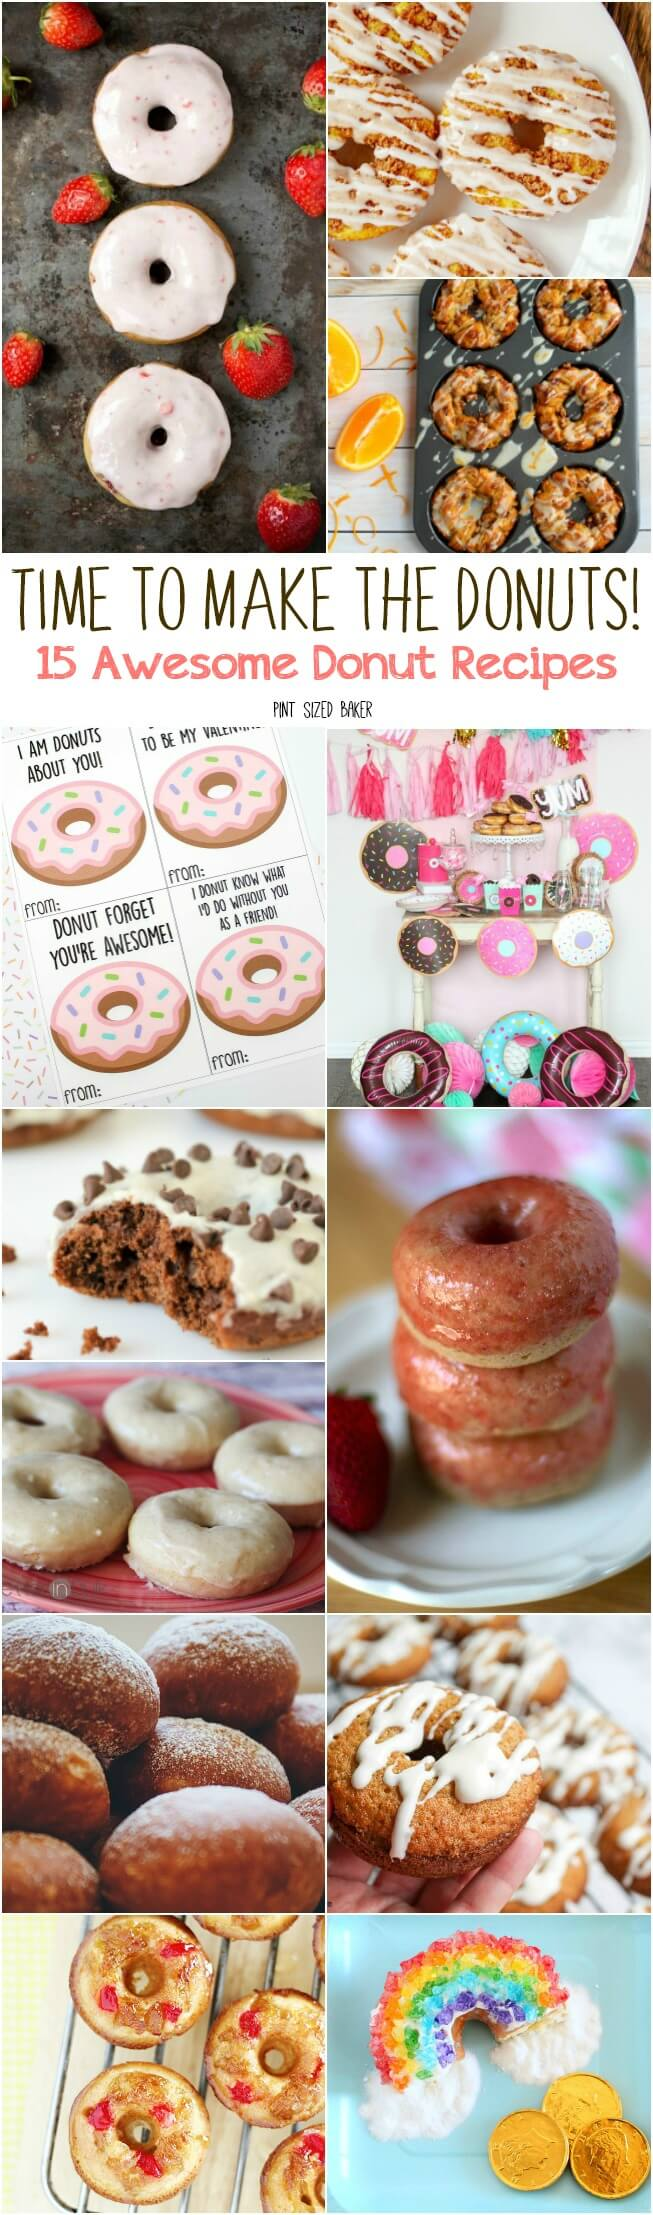 rise and shine - It's Time to Make the Donuts! Everyone loves stopping by the doughnut shop for a sweet treat, but here's 15 great donut recipes you can make at home with the family.